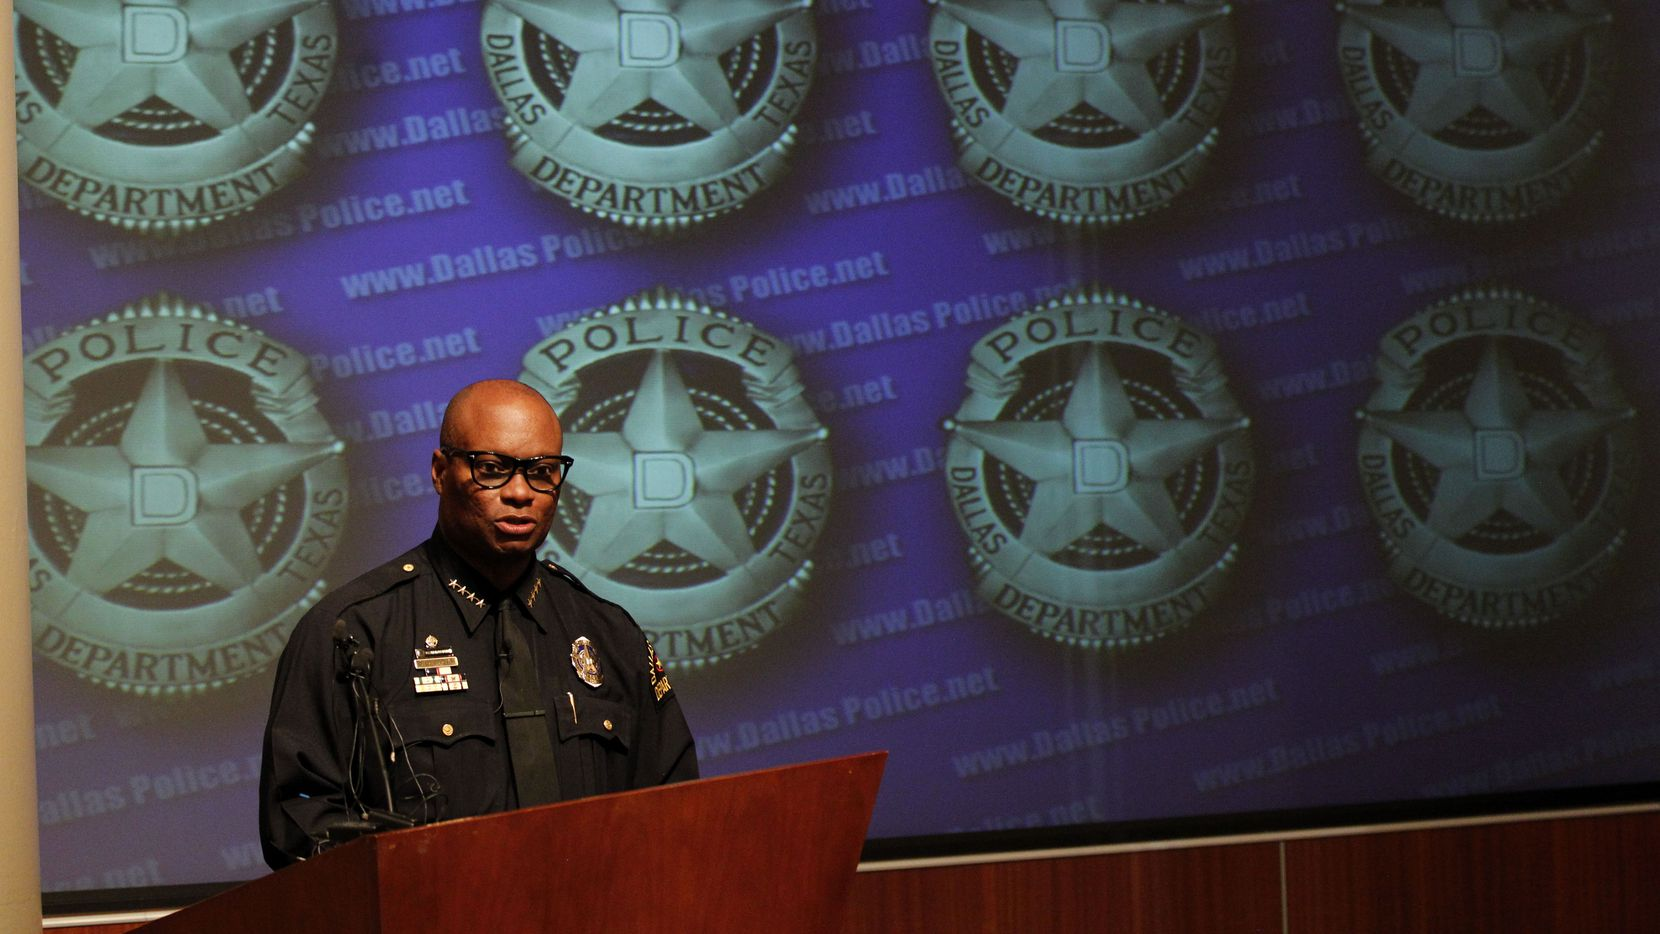 Dallas police organize community coalition for policy input